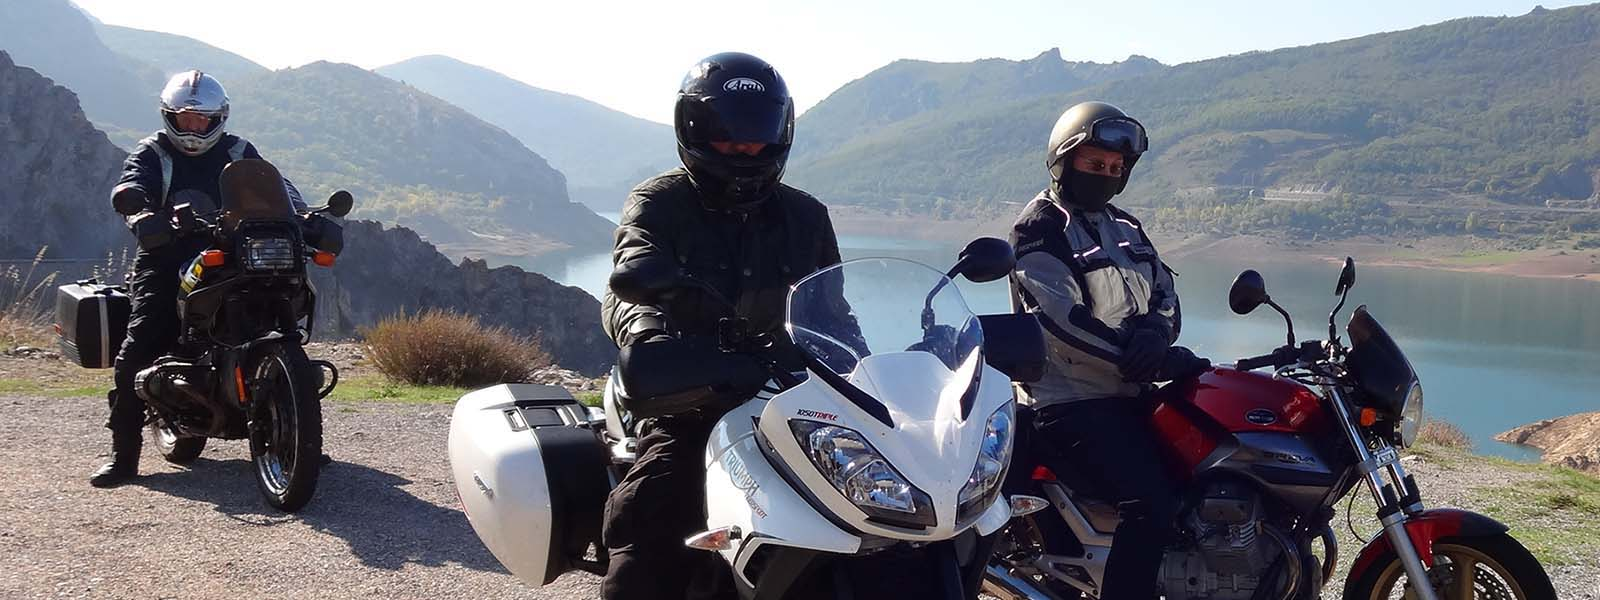 The Northern Spain and Portugal Motorcycle Tour including the Picos de Europa